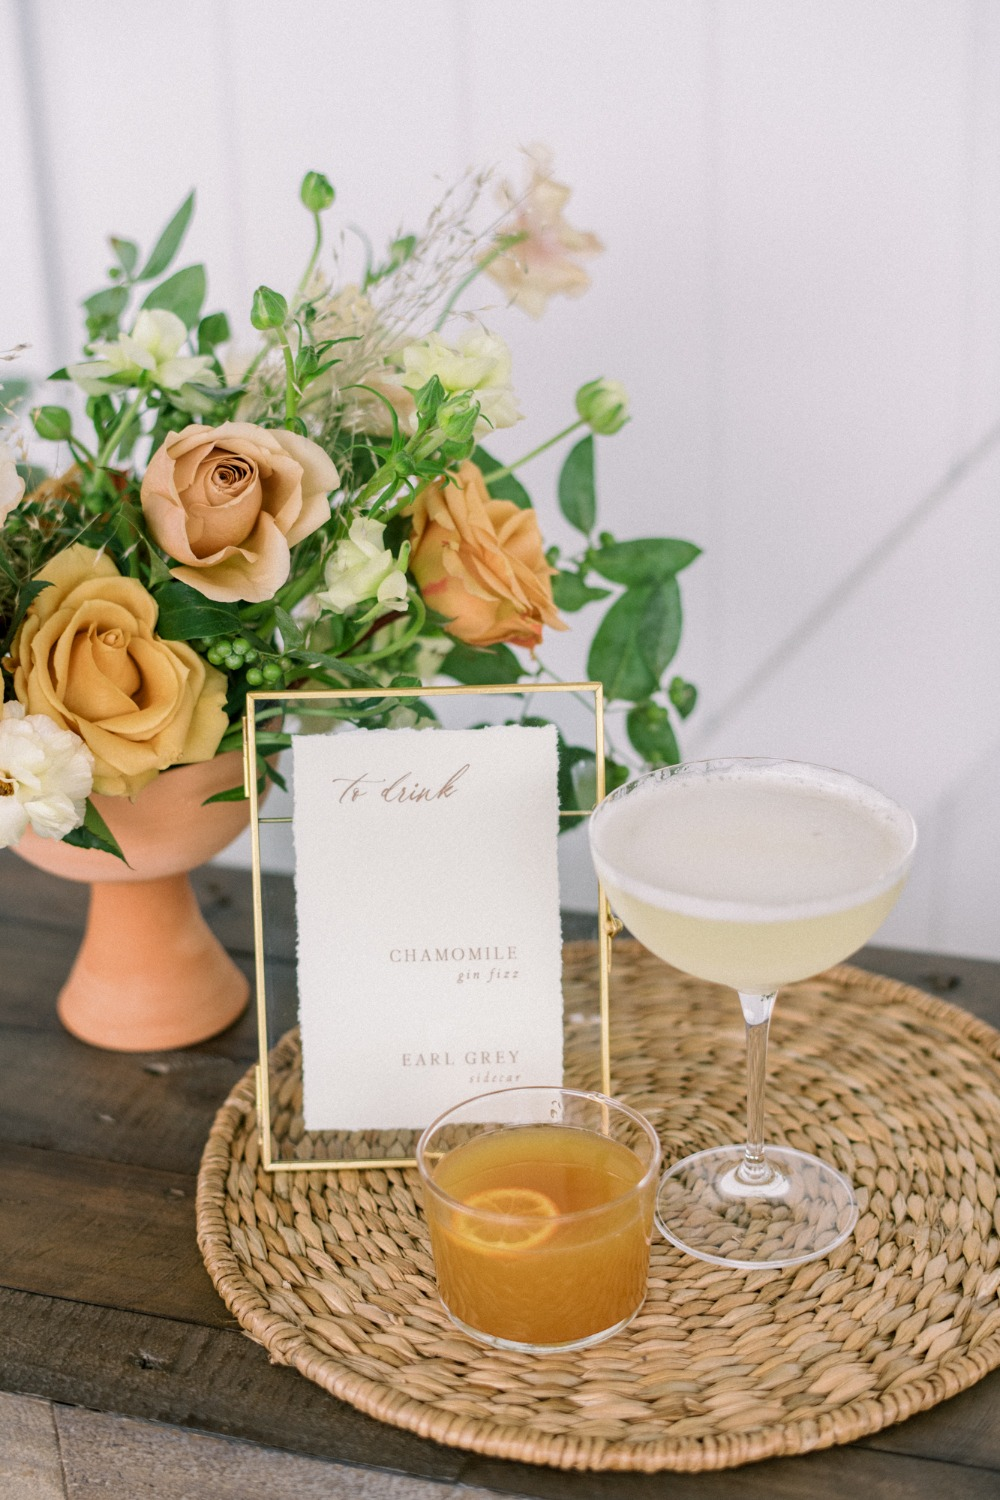 signature wedding drink ideas - Chamomile Gin Fizz and an Earl Grey sidecar